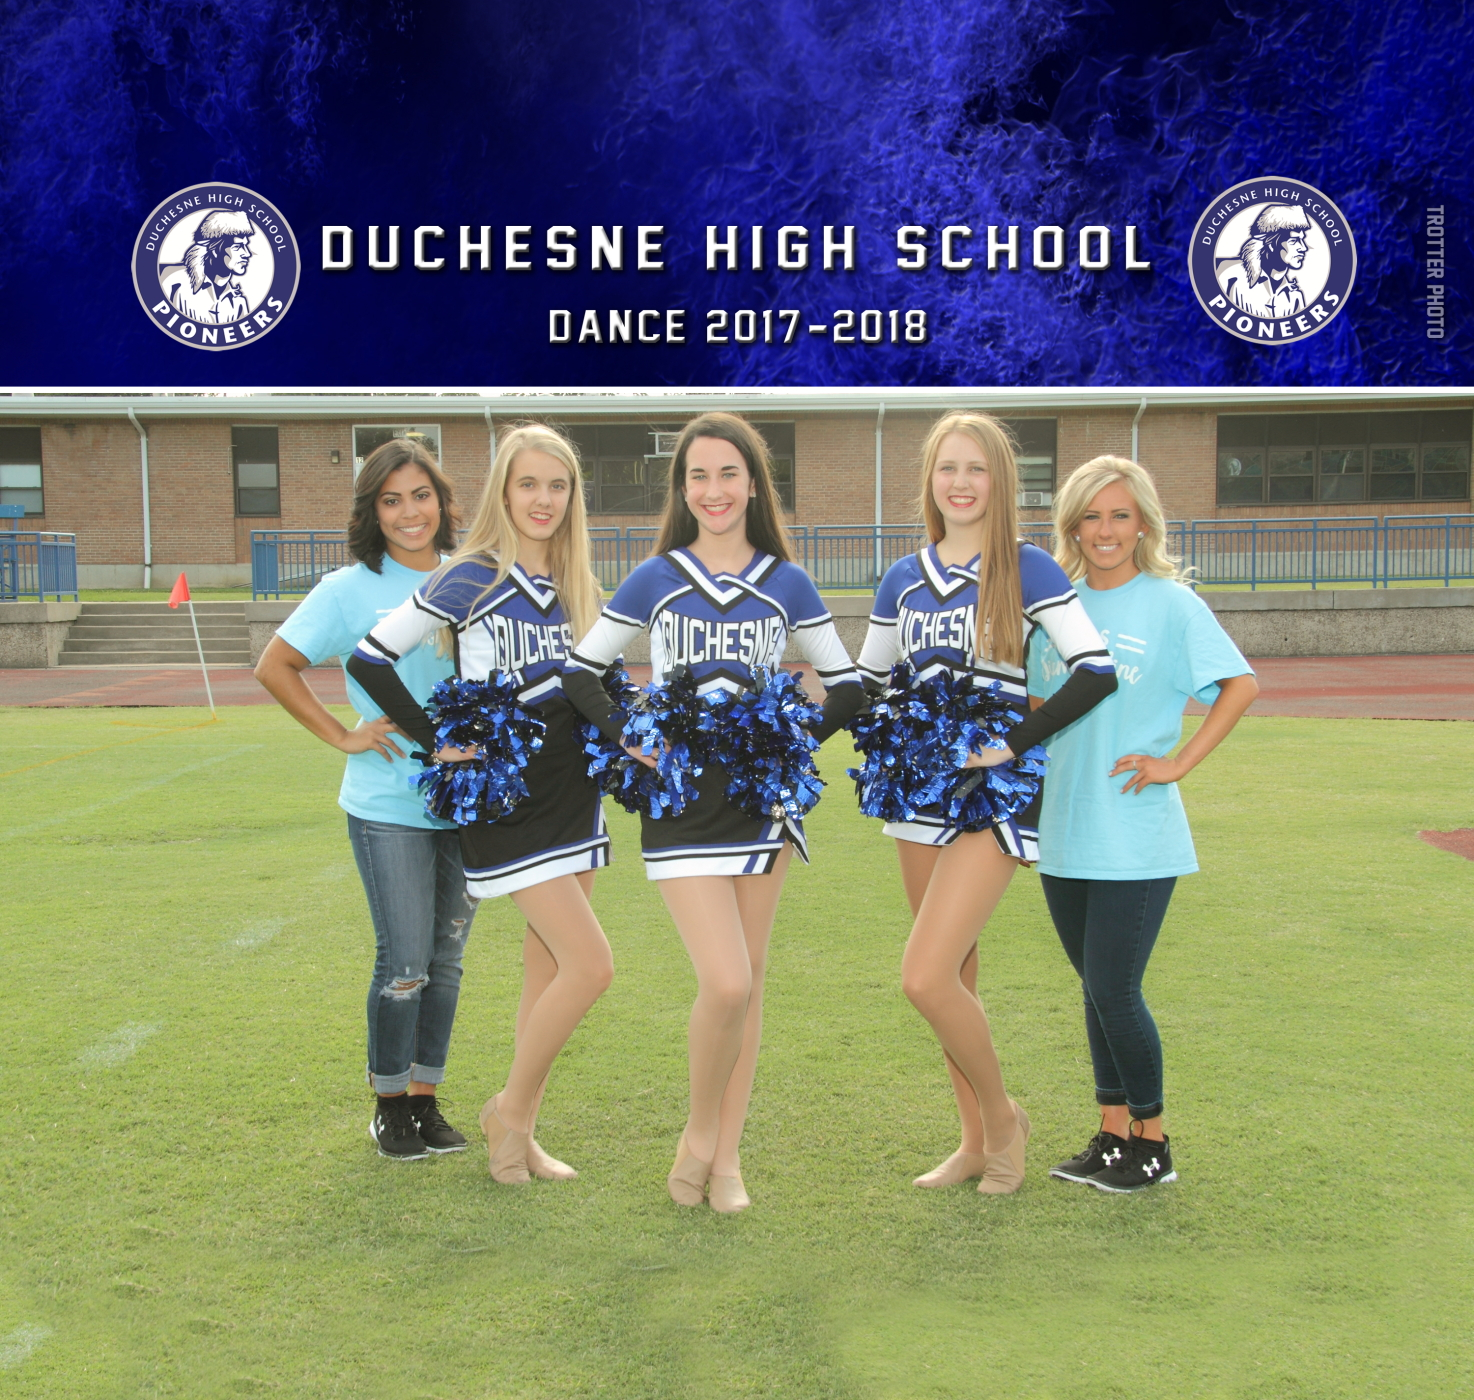 Duchesne High School House Raffle Duchesne High School Diamondline